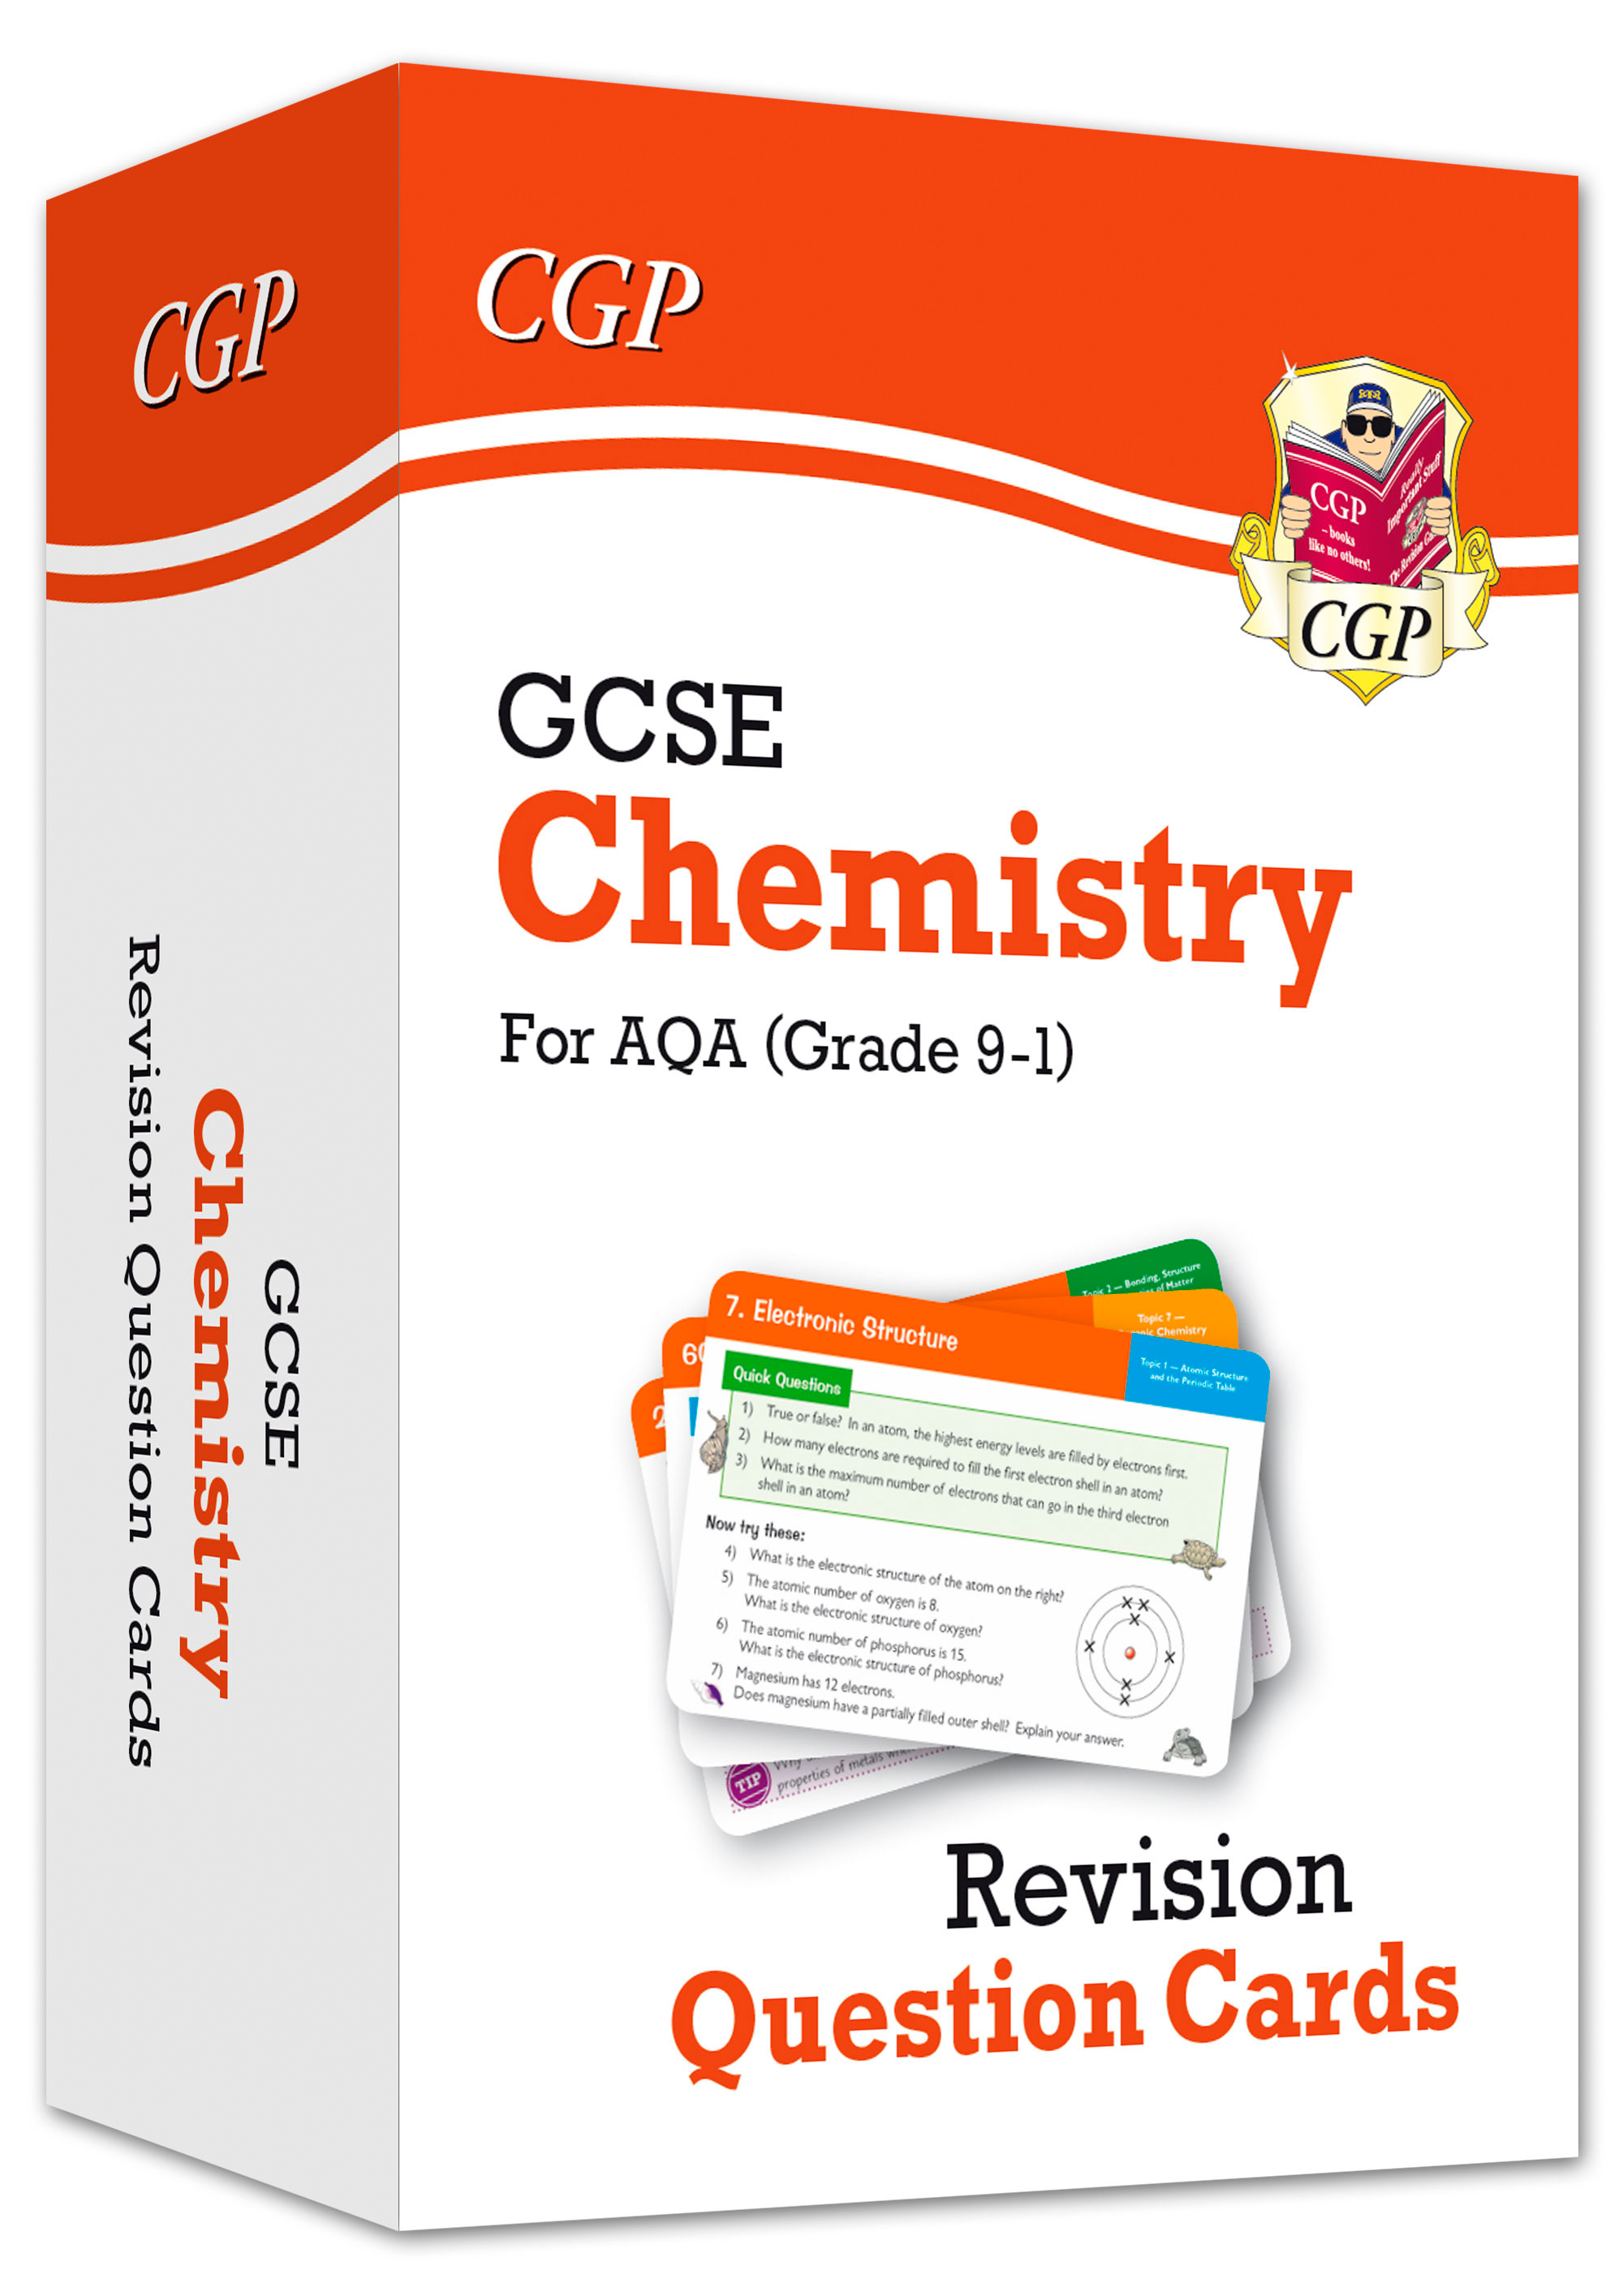 CAF41DK - New 9-1 GCSE Chemistry AQA Revision Question Cards